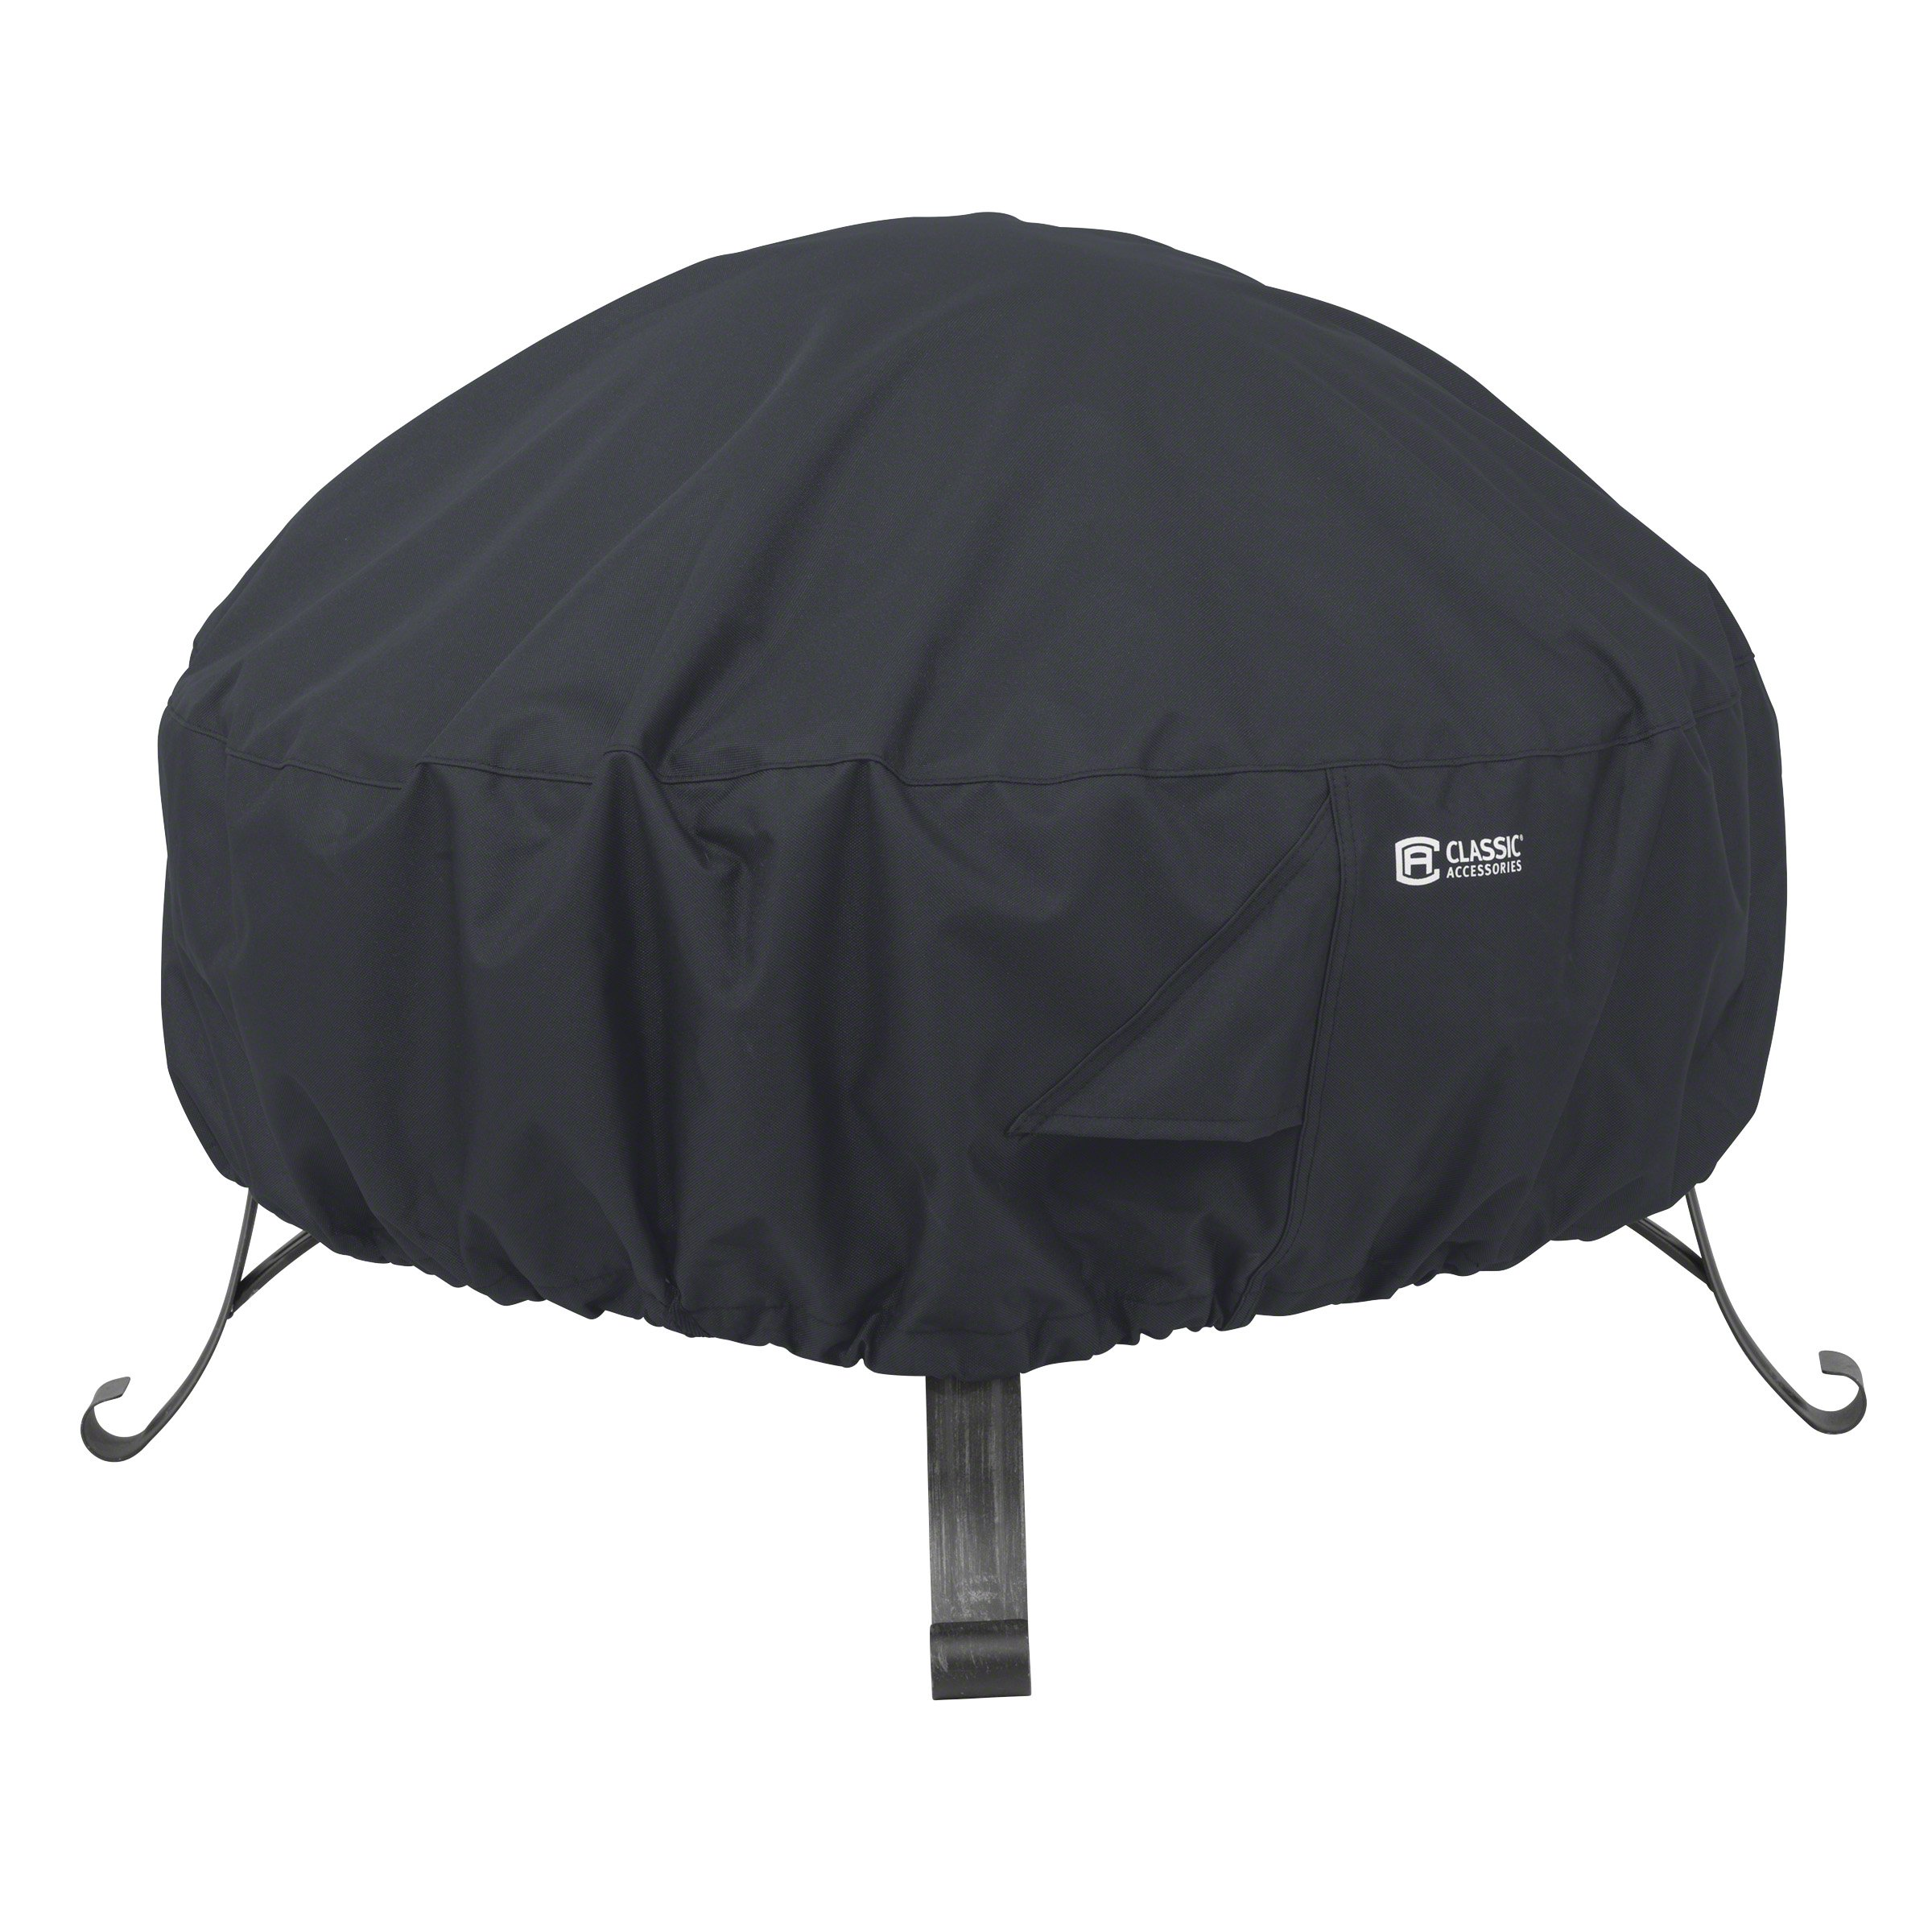 Classic Accessories 55-552-010401-00 Round Fire Pit Cover, 30'', Black